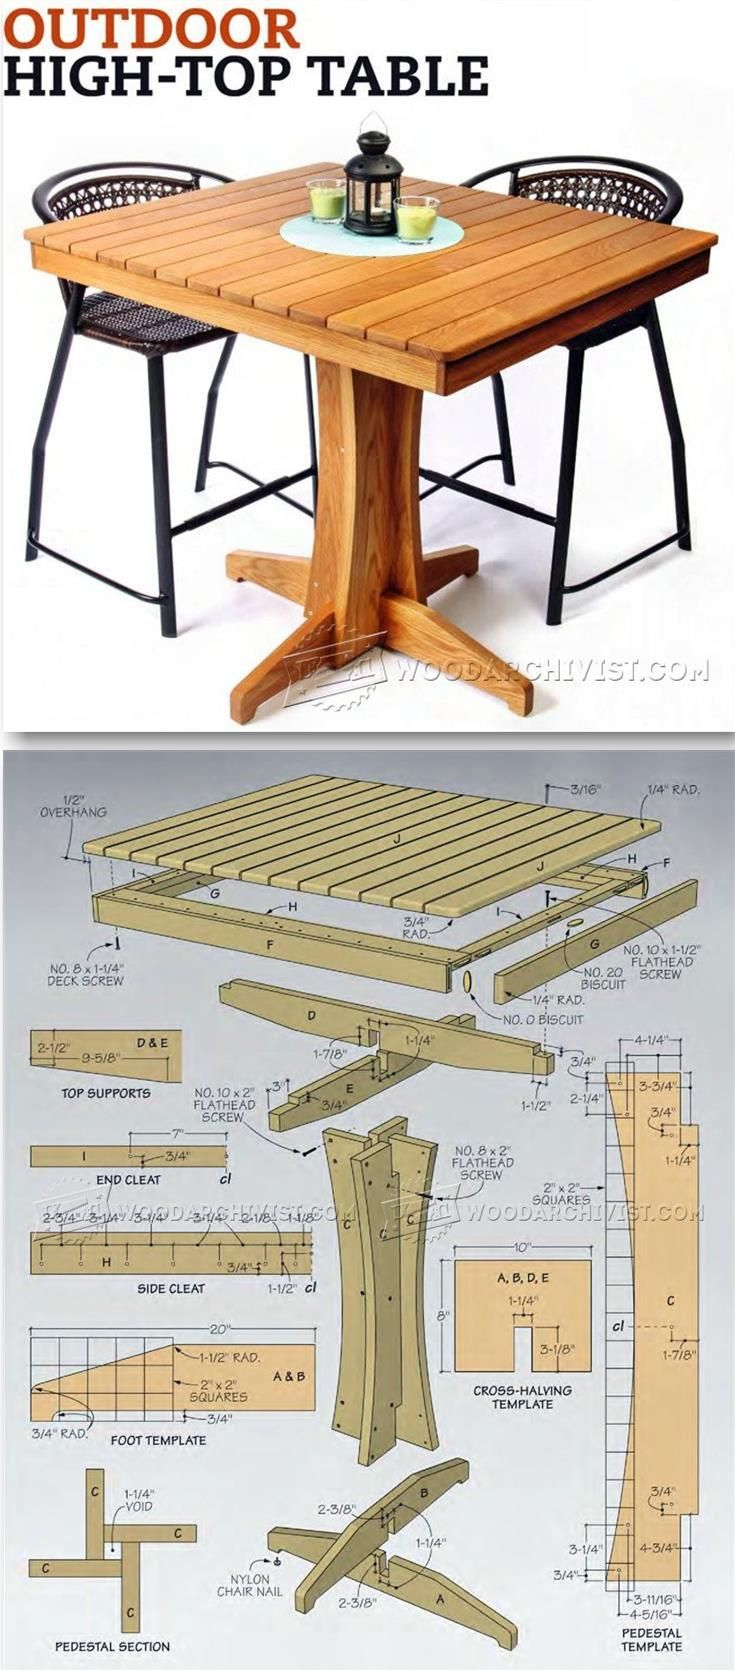 Outdoor High Top Table Plans - Outdoor Furniture Plans & Projects ...